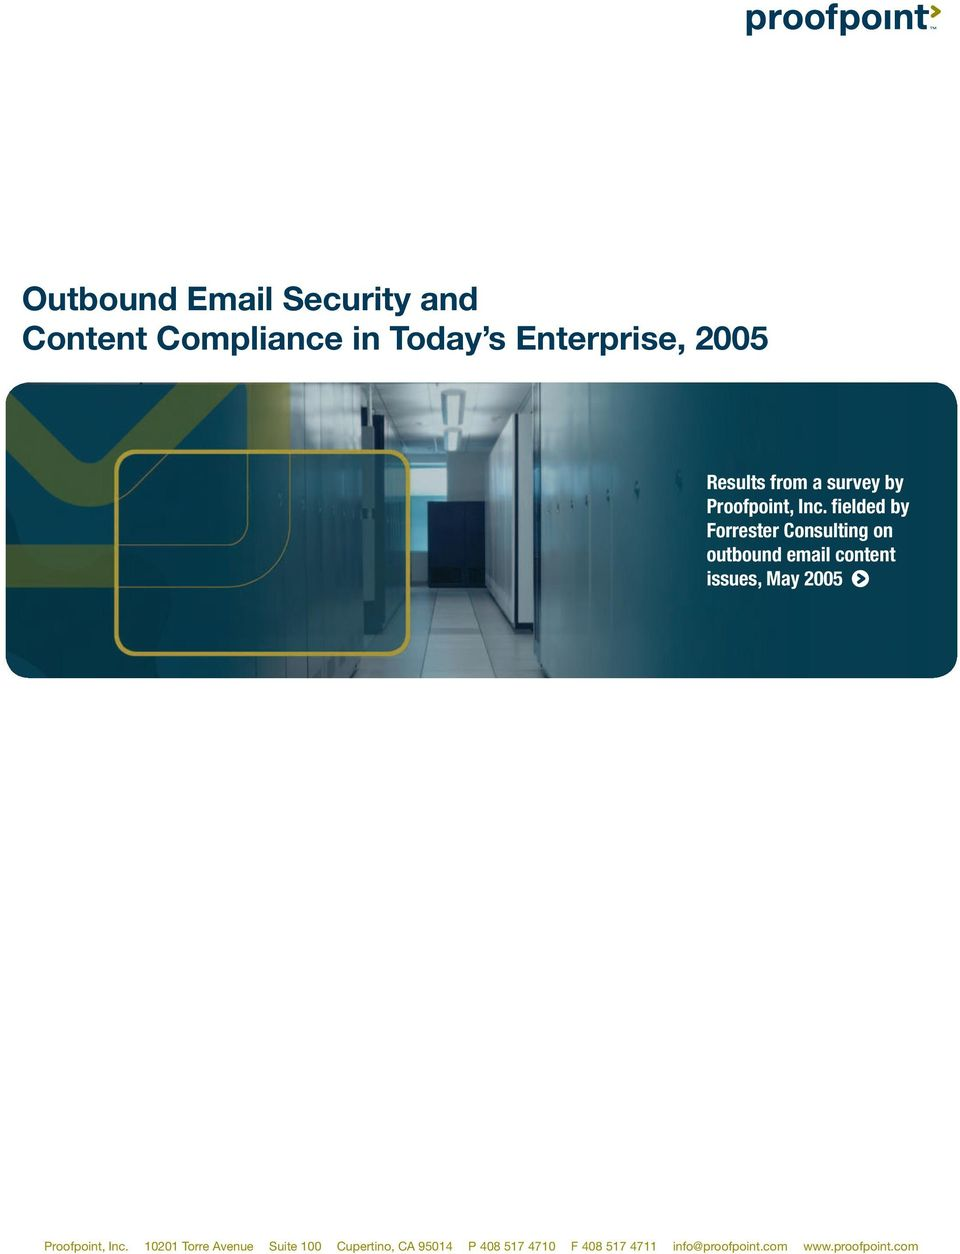 fielded by Forrester Consulting on outbound email content issues, May 2005